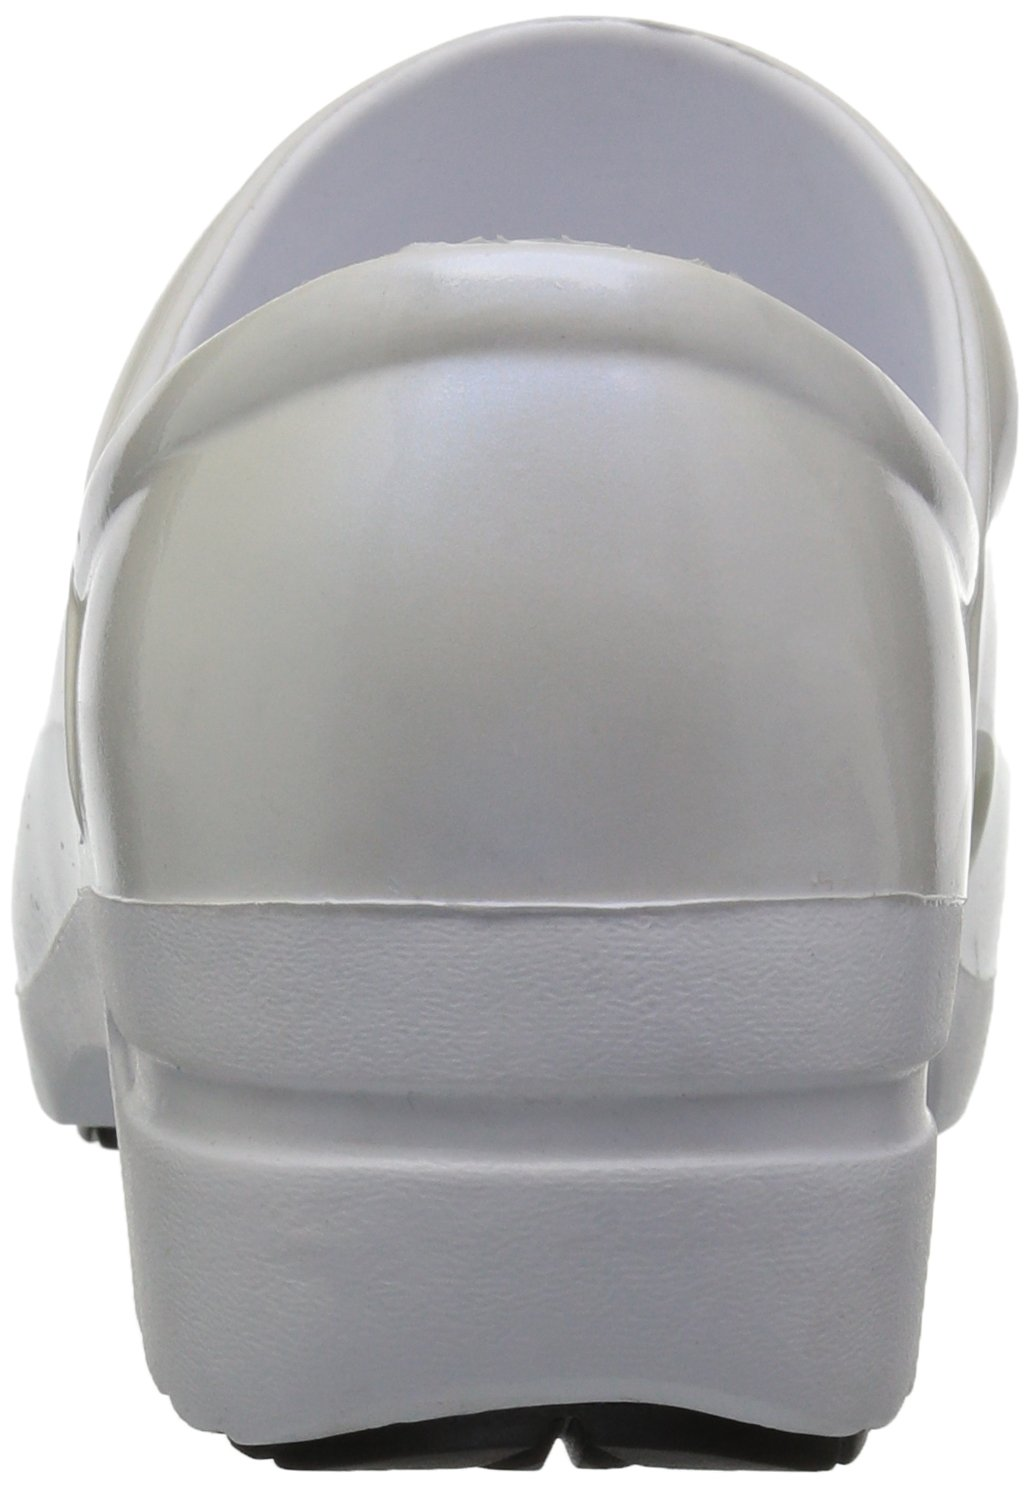 Anywear Women's Srangel Medical Professional Shoe, White Pearlized, White, 8 Medium US by Anywear (Image #2)